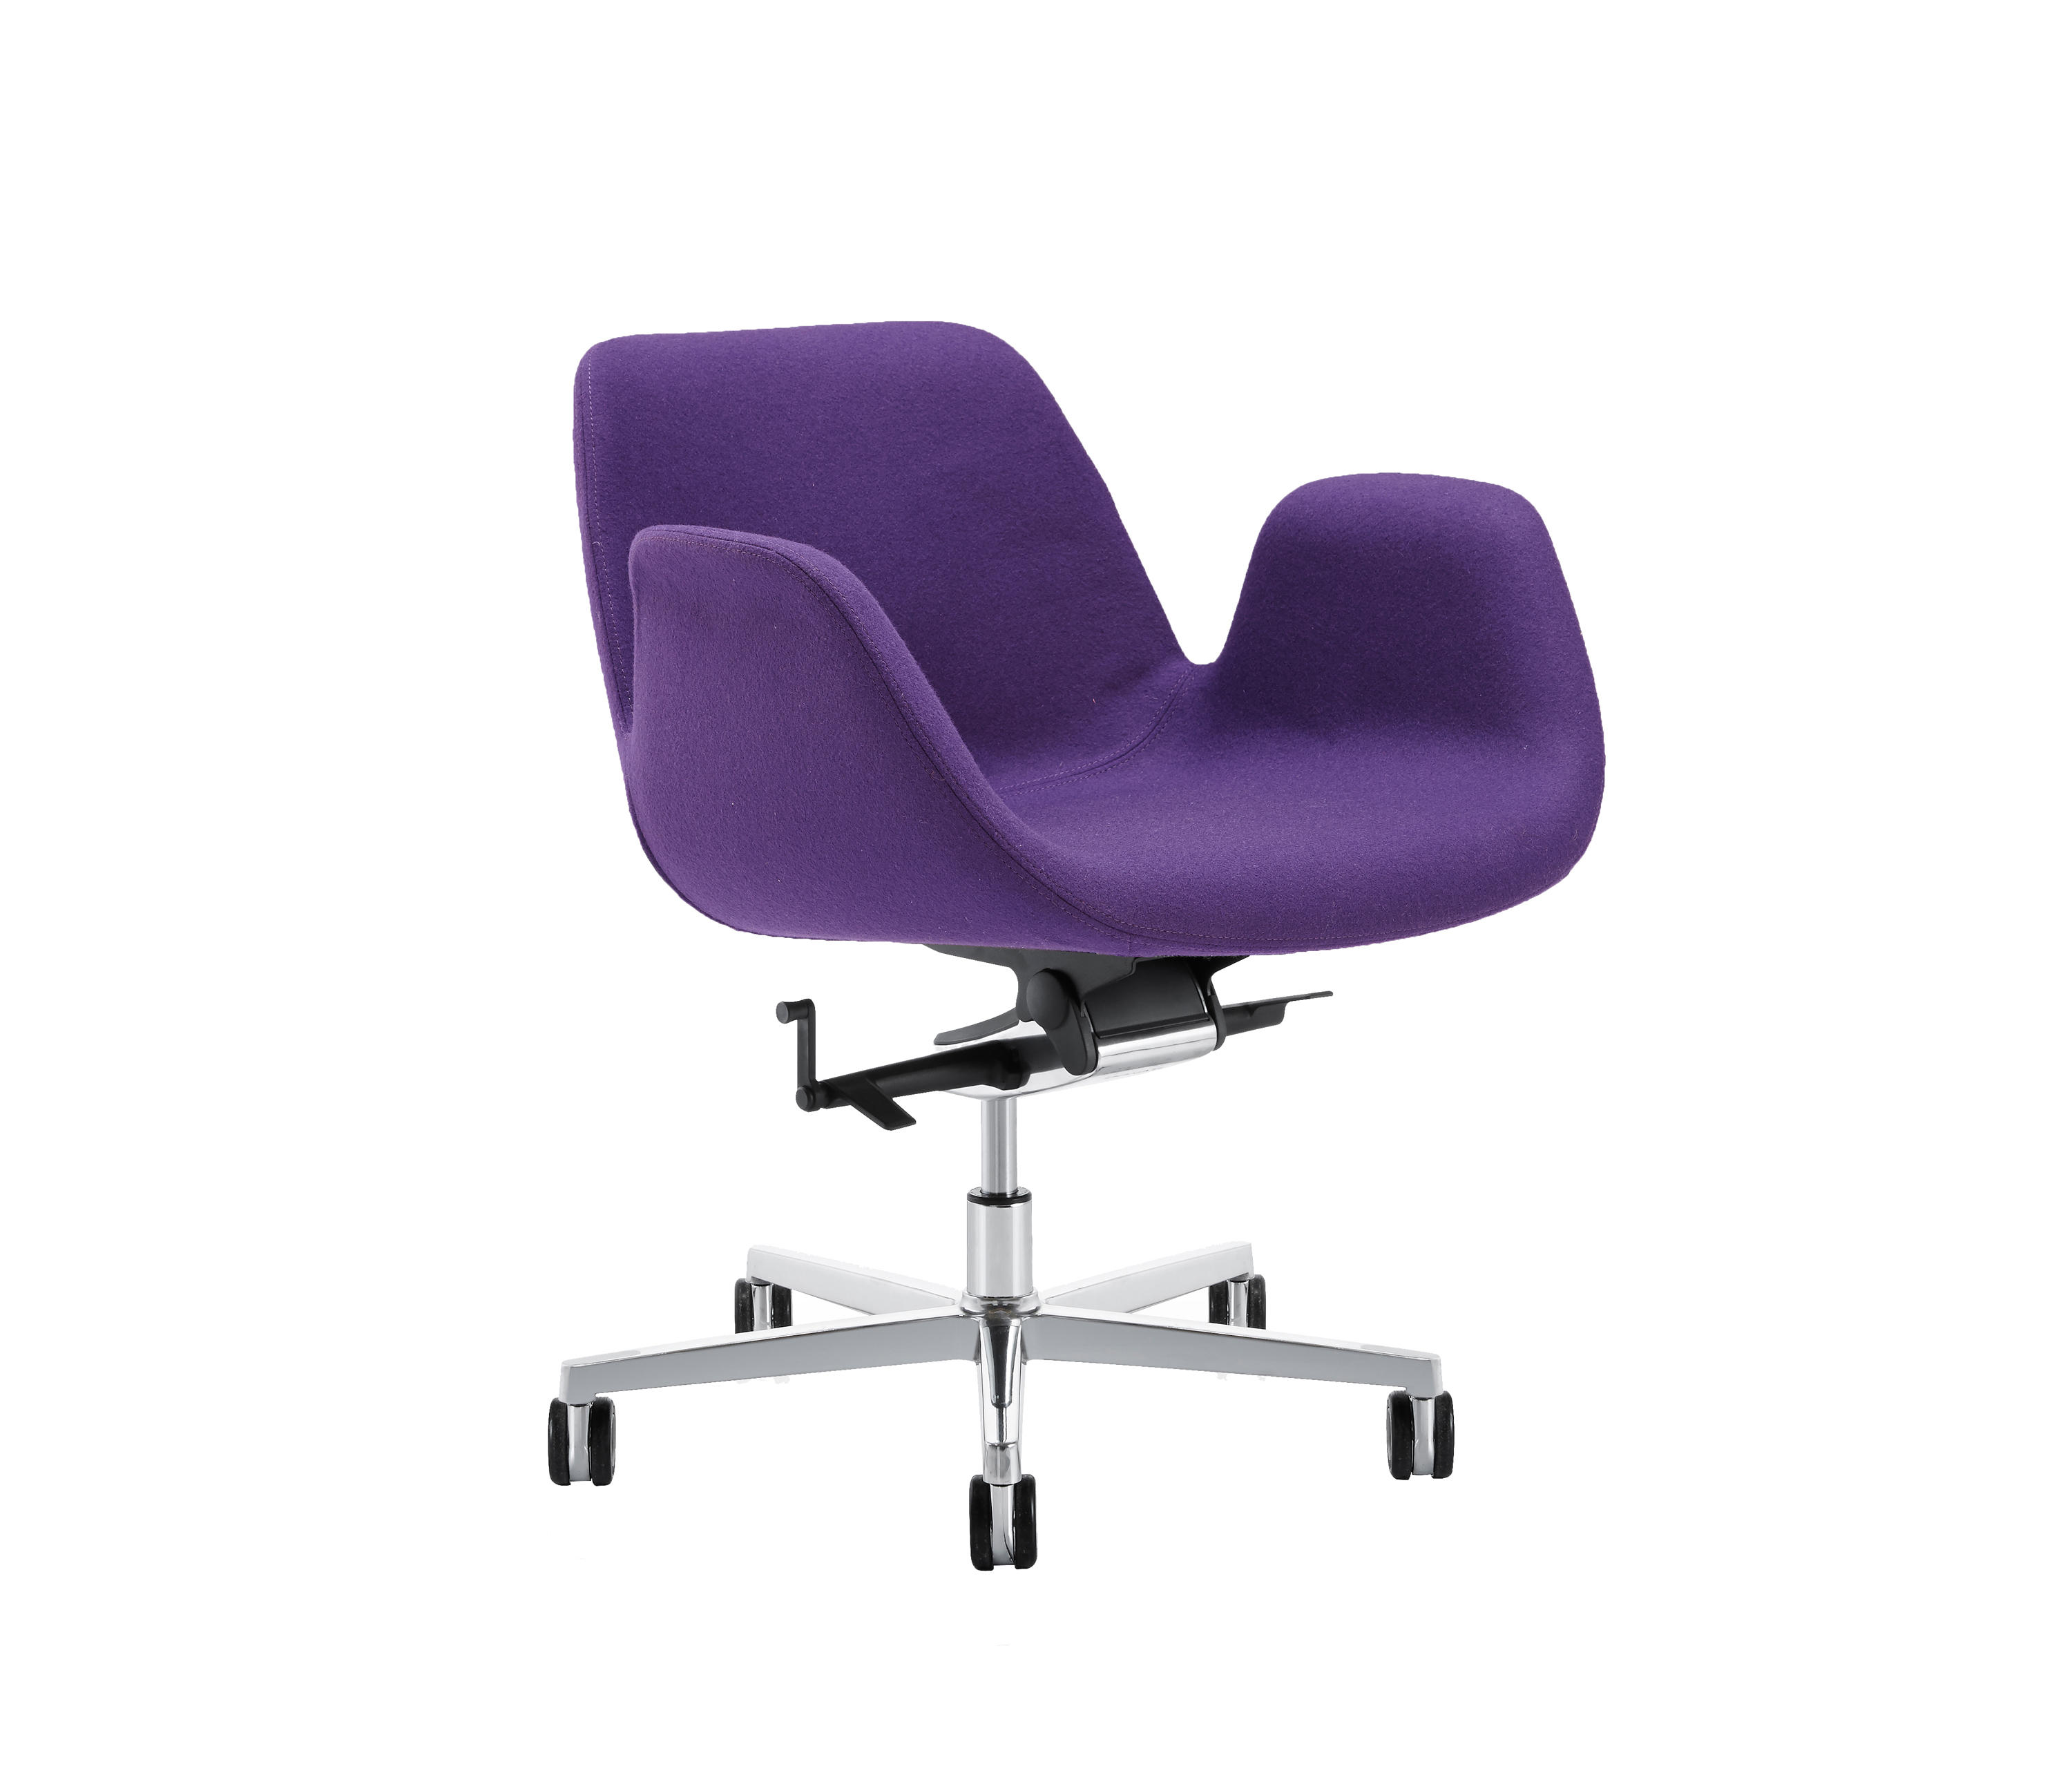 office chair side. halia office chair by koleksiyon furniture   visitors chairs / side